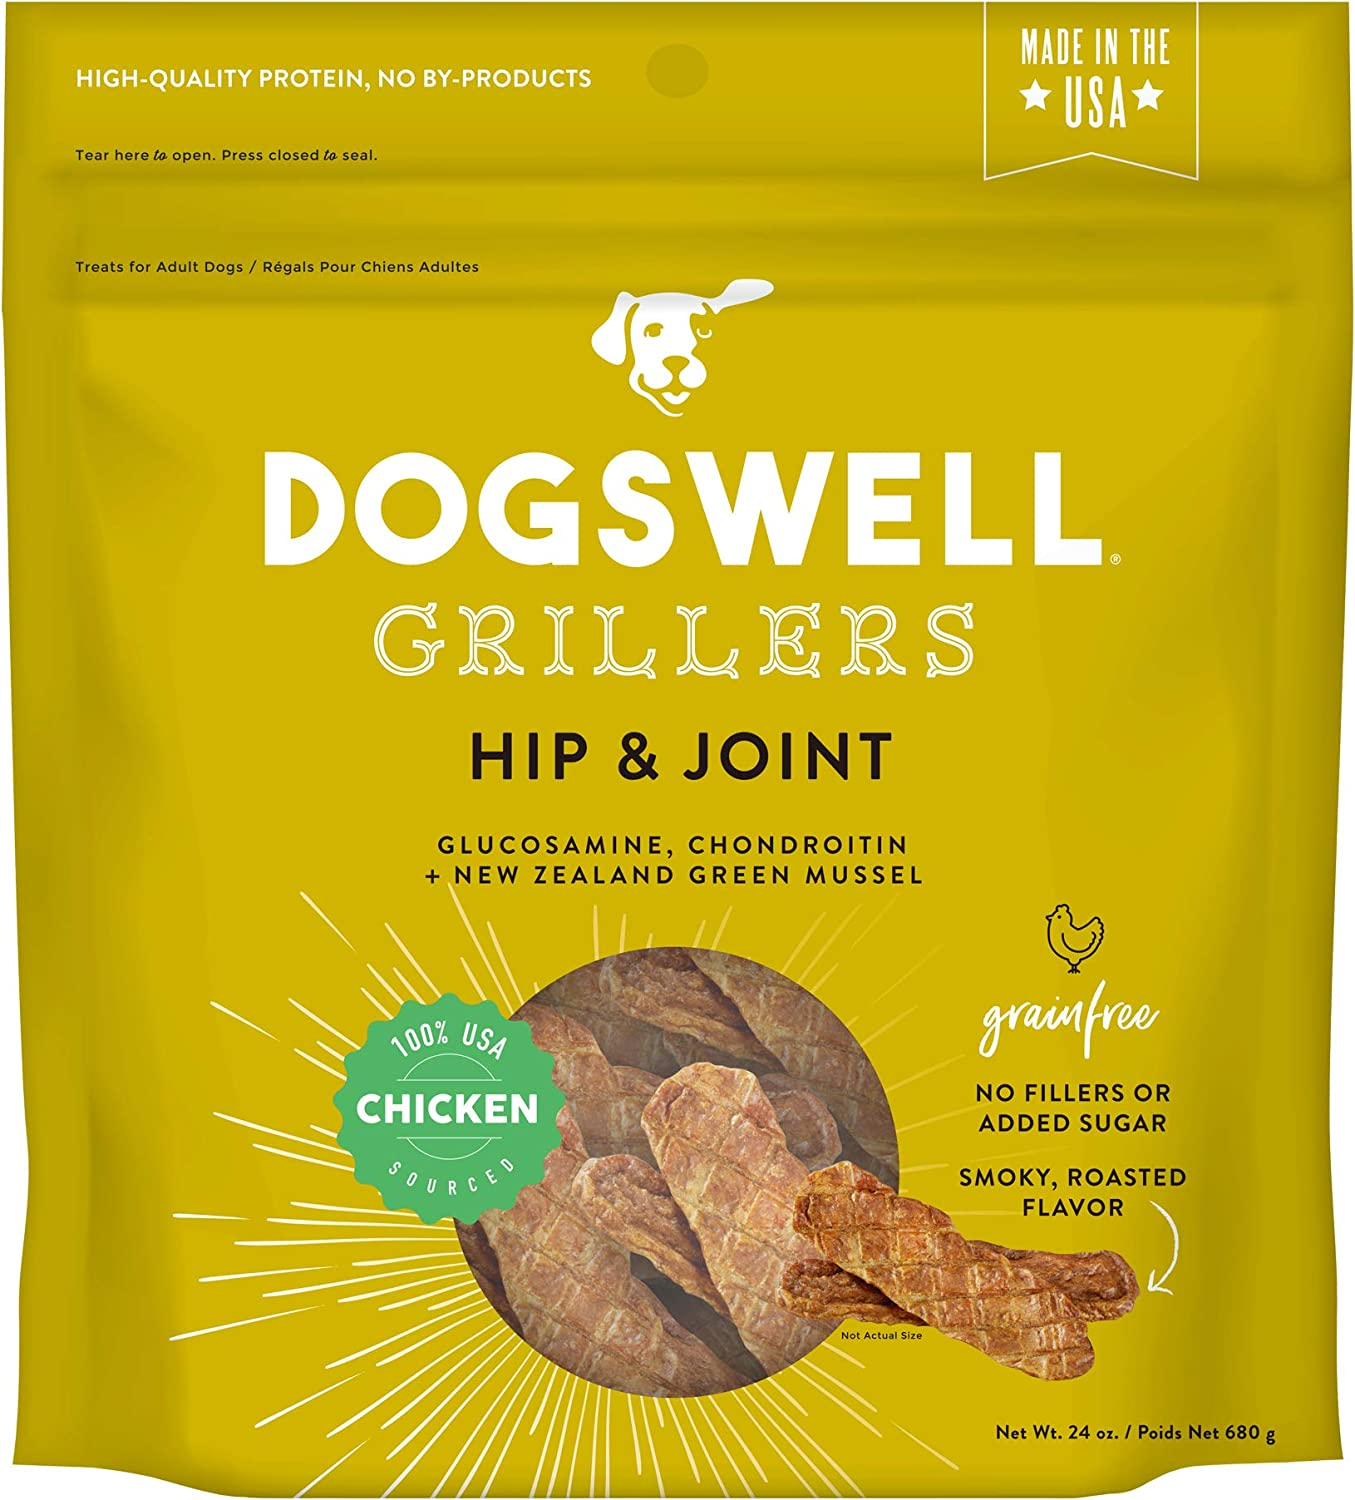 Dogswell 100 Grilled Meat Treats for Dogs, Made in the USA with Glucosamine, Chondroitin New Zealand Green Mussel for Healthy Hips